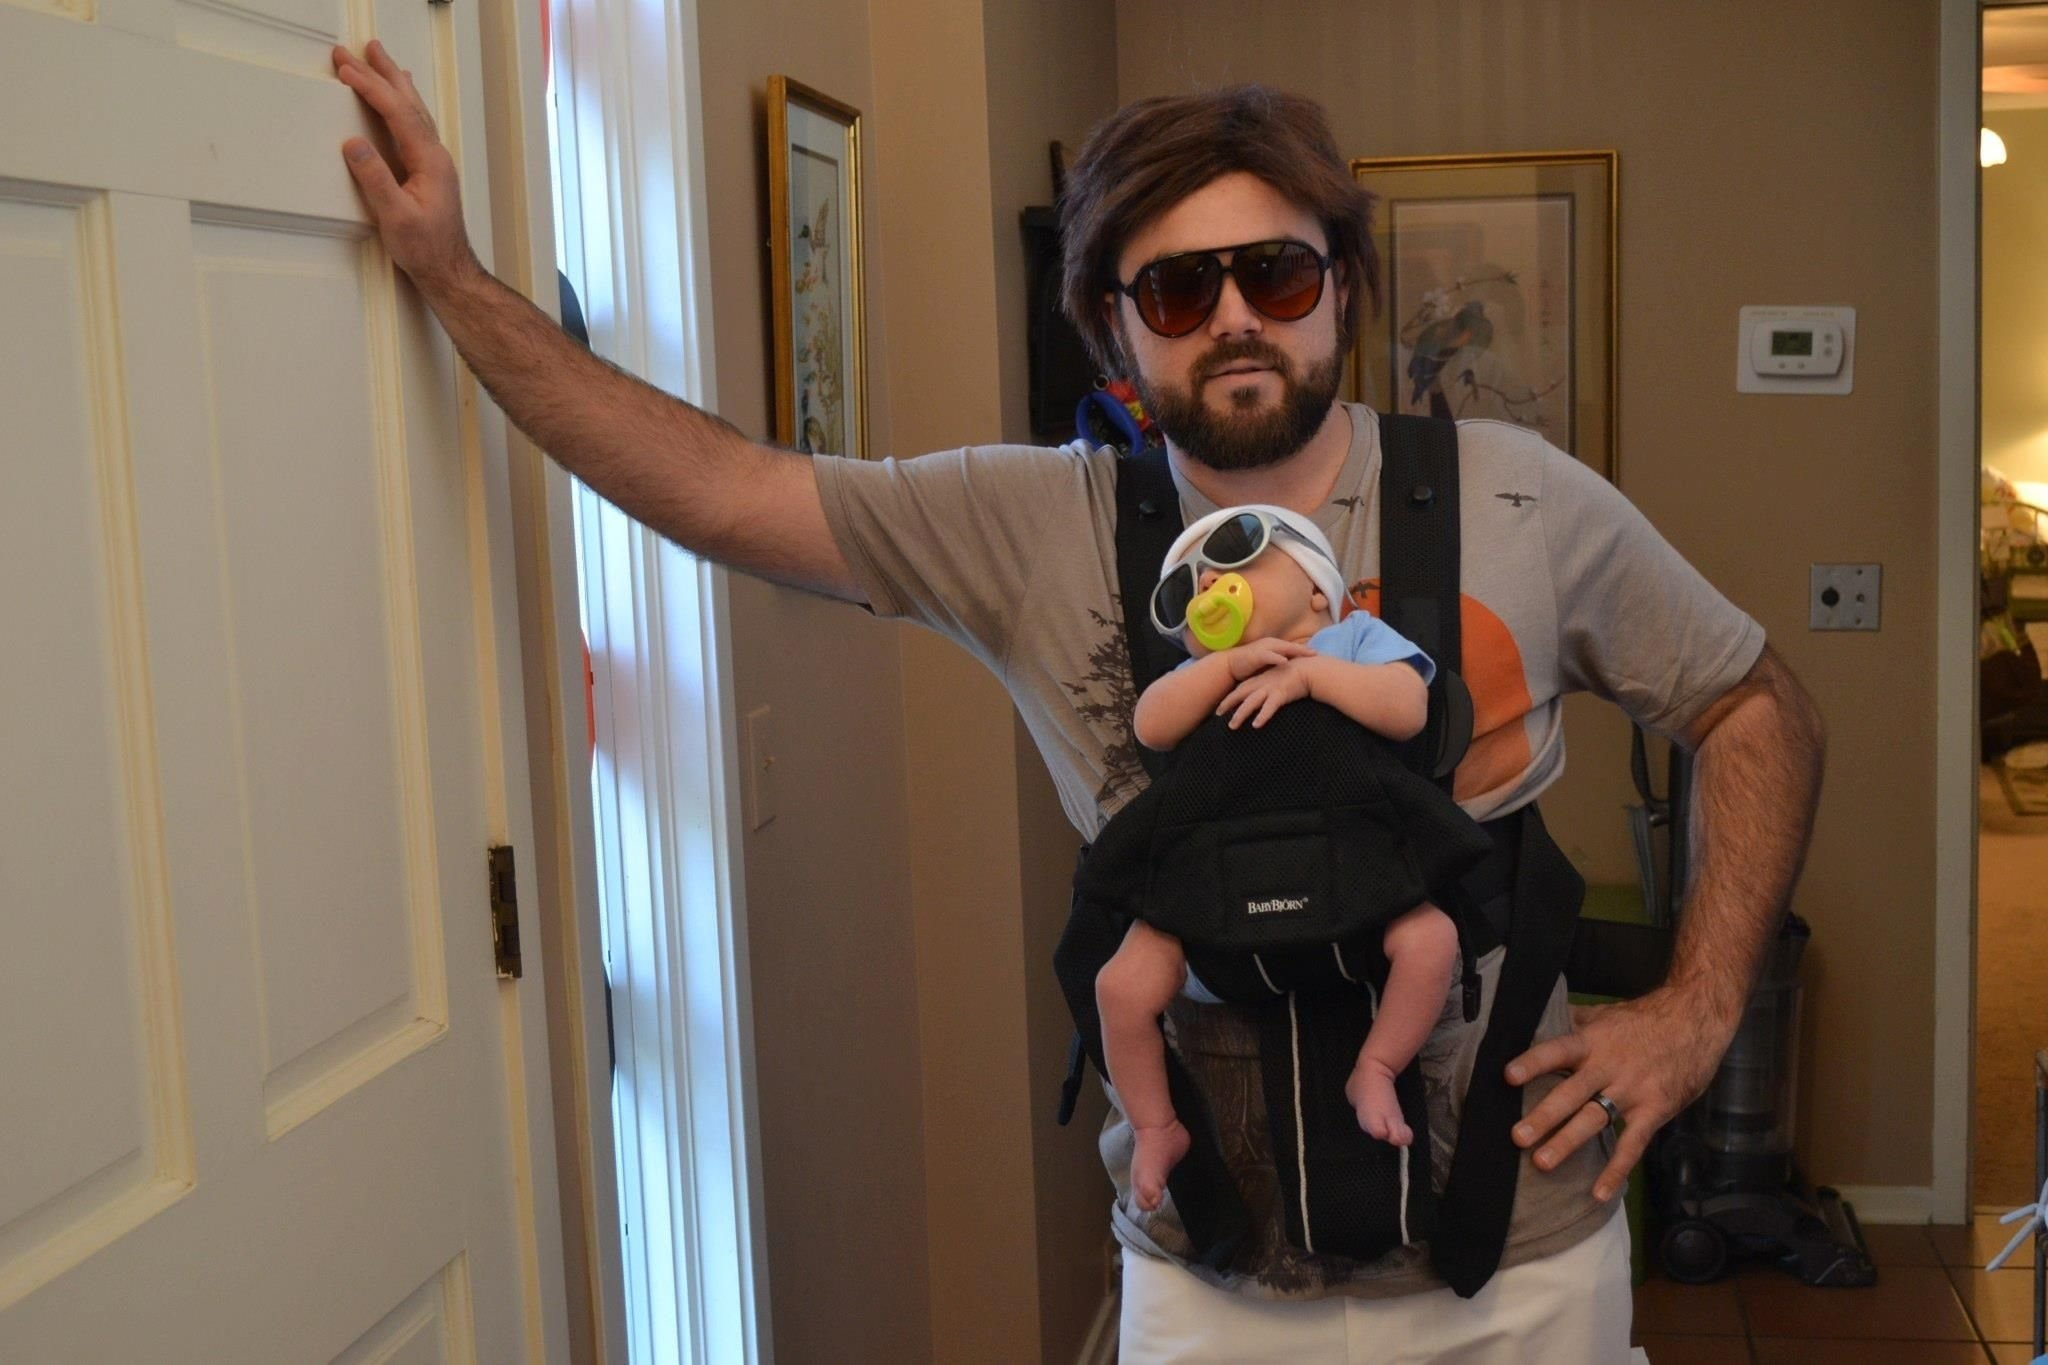 10 Most Popular Last Minute Costume Ideas For Men 31 halloween costumes better than yours baby halloween costumes 1 2020